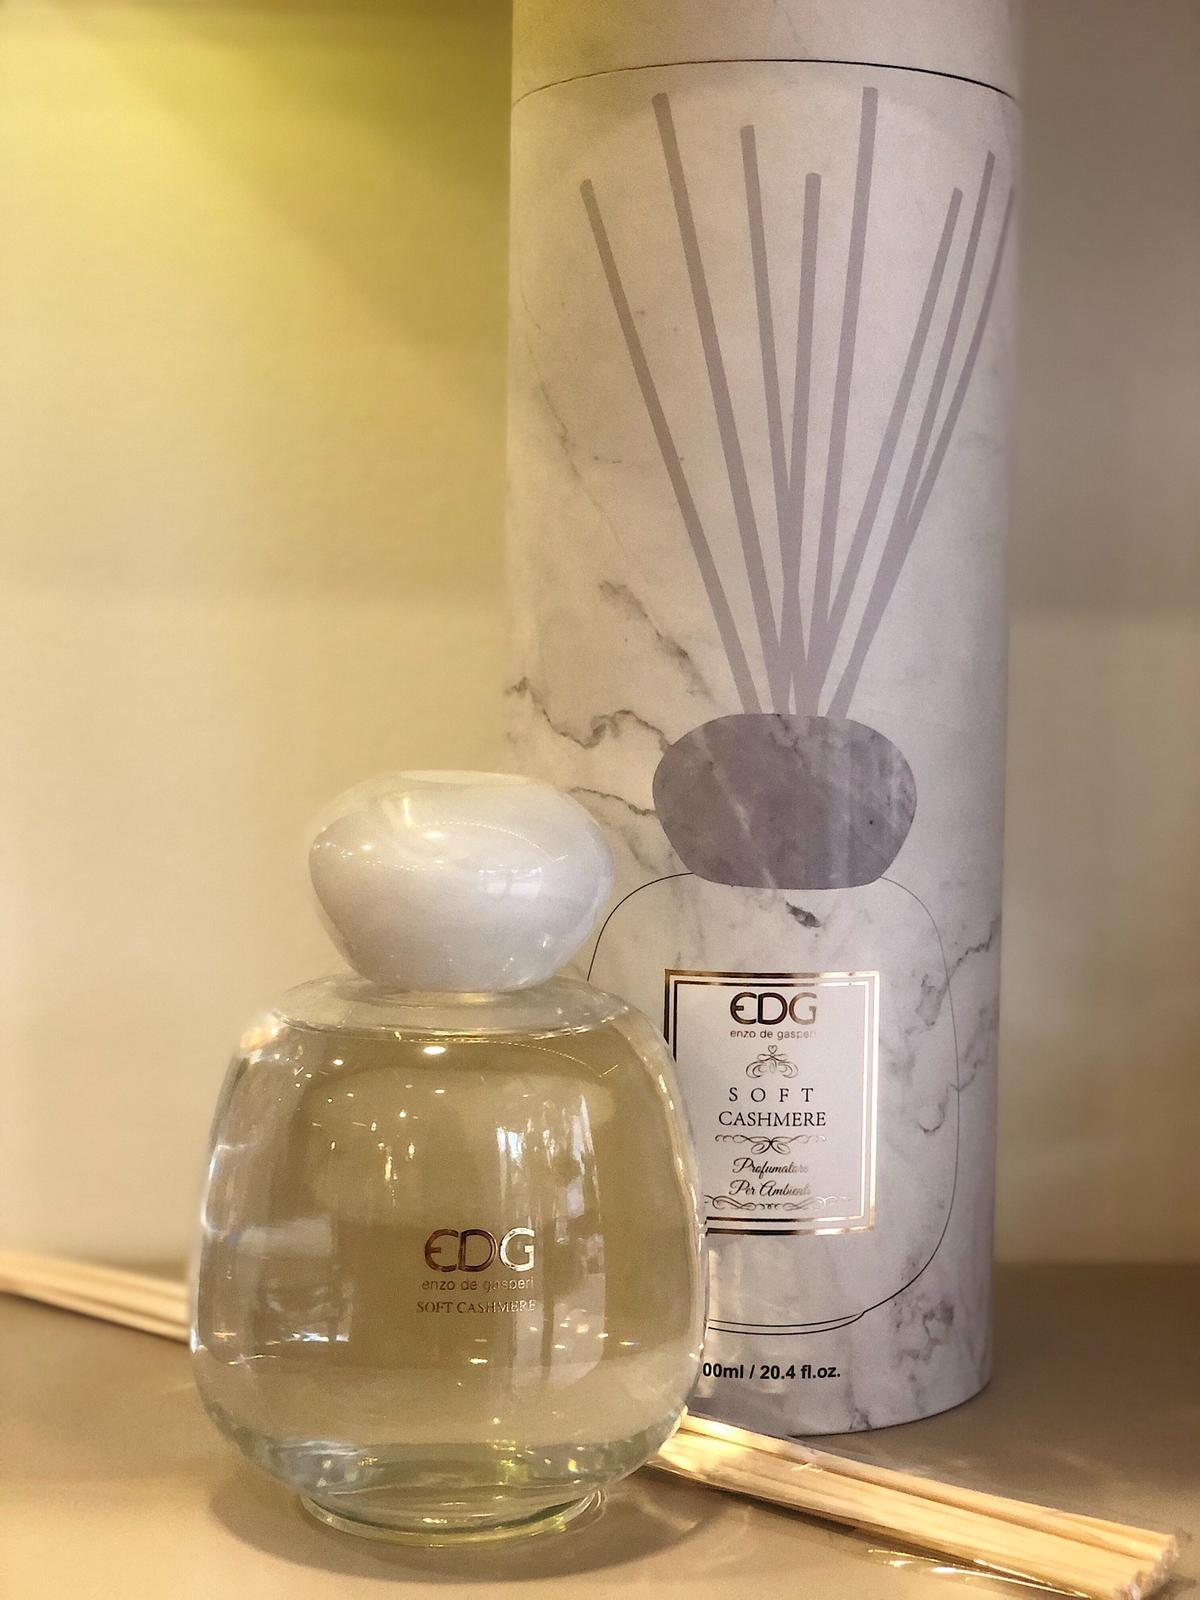 Soft Cashmere 600ml EDG